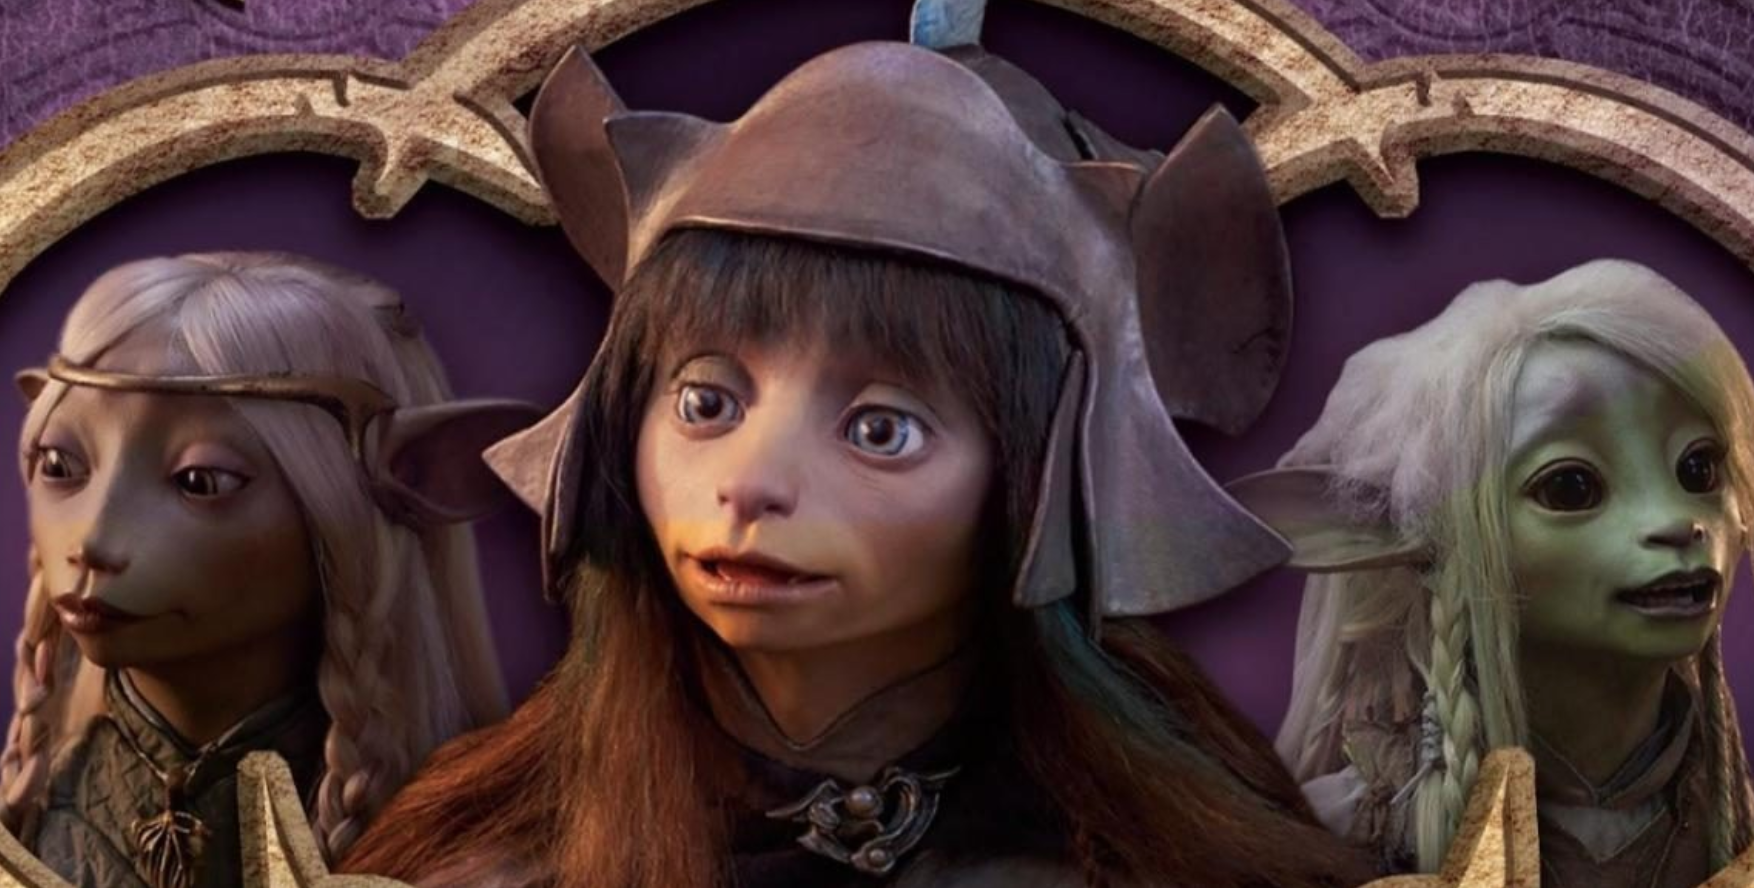 Meet the creatures of Thra in The Dark Crystal: Age of Resistance tie-in book, Heroes of the Resistance